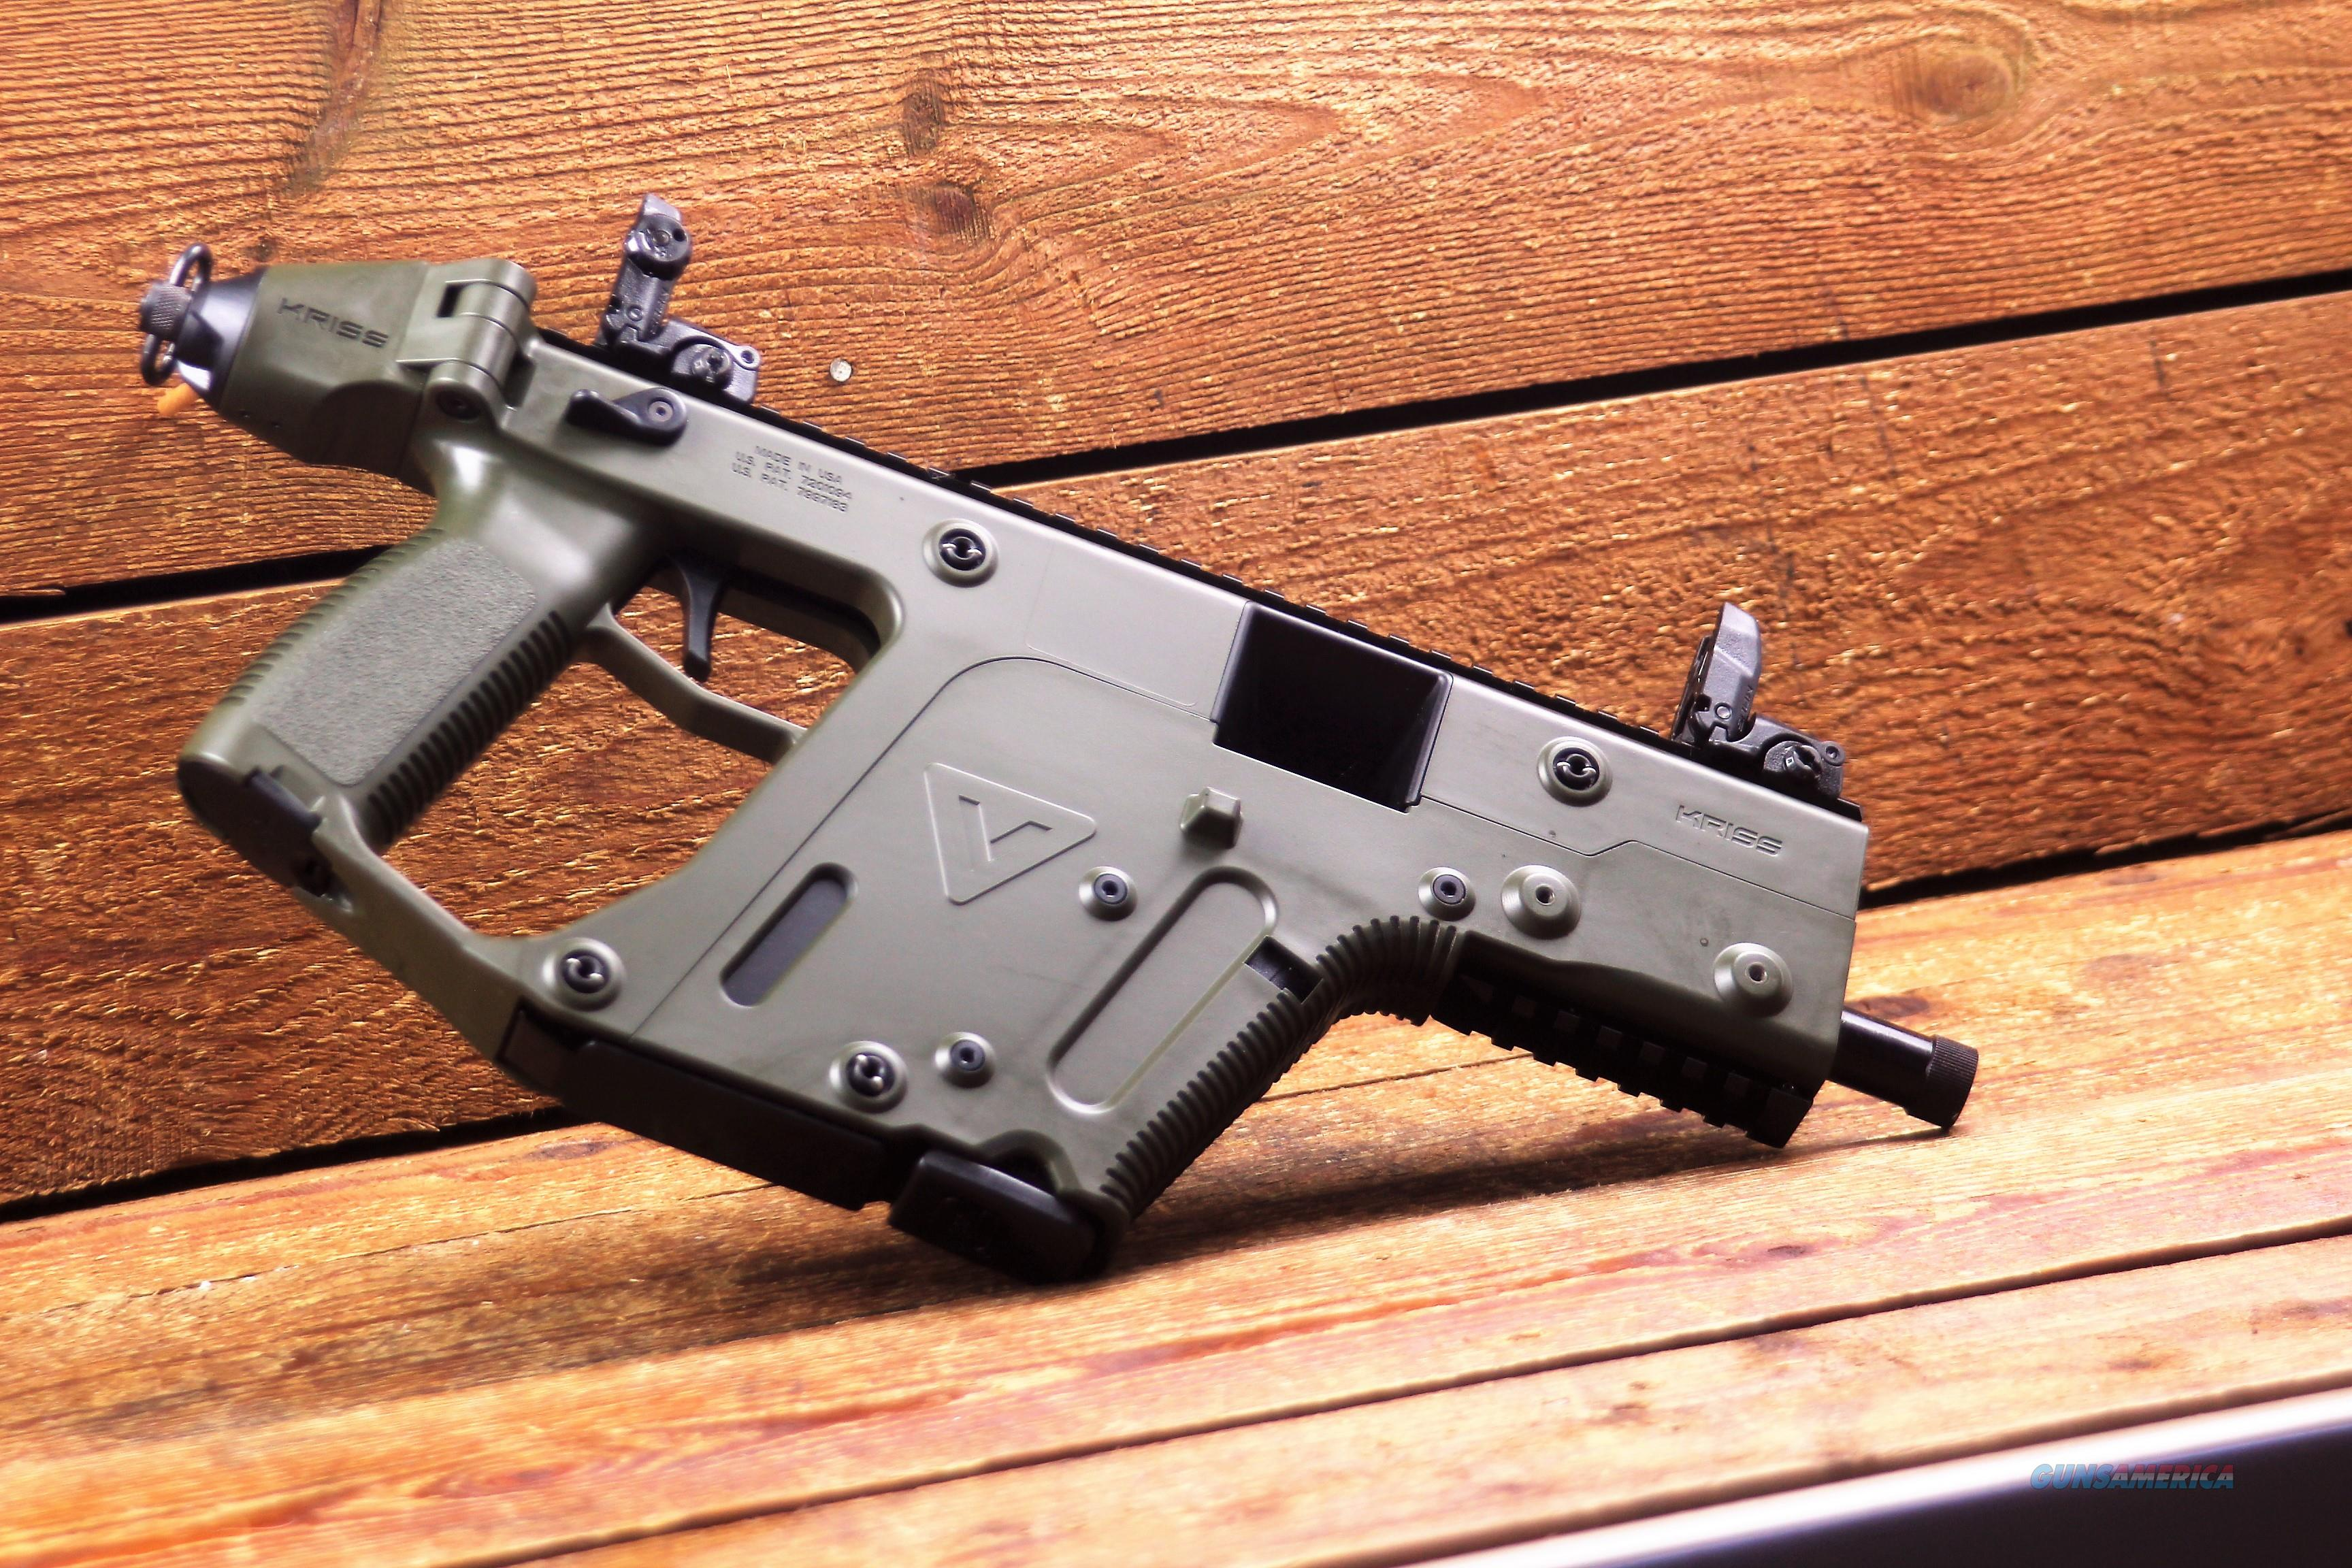 "EASY PAY $114 DOWN LAYAWAY 12 MONTHLY PAYMENTS KRISS Vector sub-machine gun SDP G2 45 ACP 5.5"" Threaded Barrel OD Green  KV45PGR20  Accepts GLOCK magazines  Guns > Pistols > Kriss Tactical Pistols"